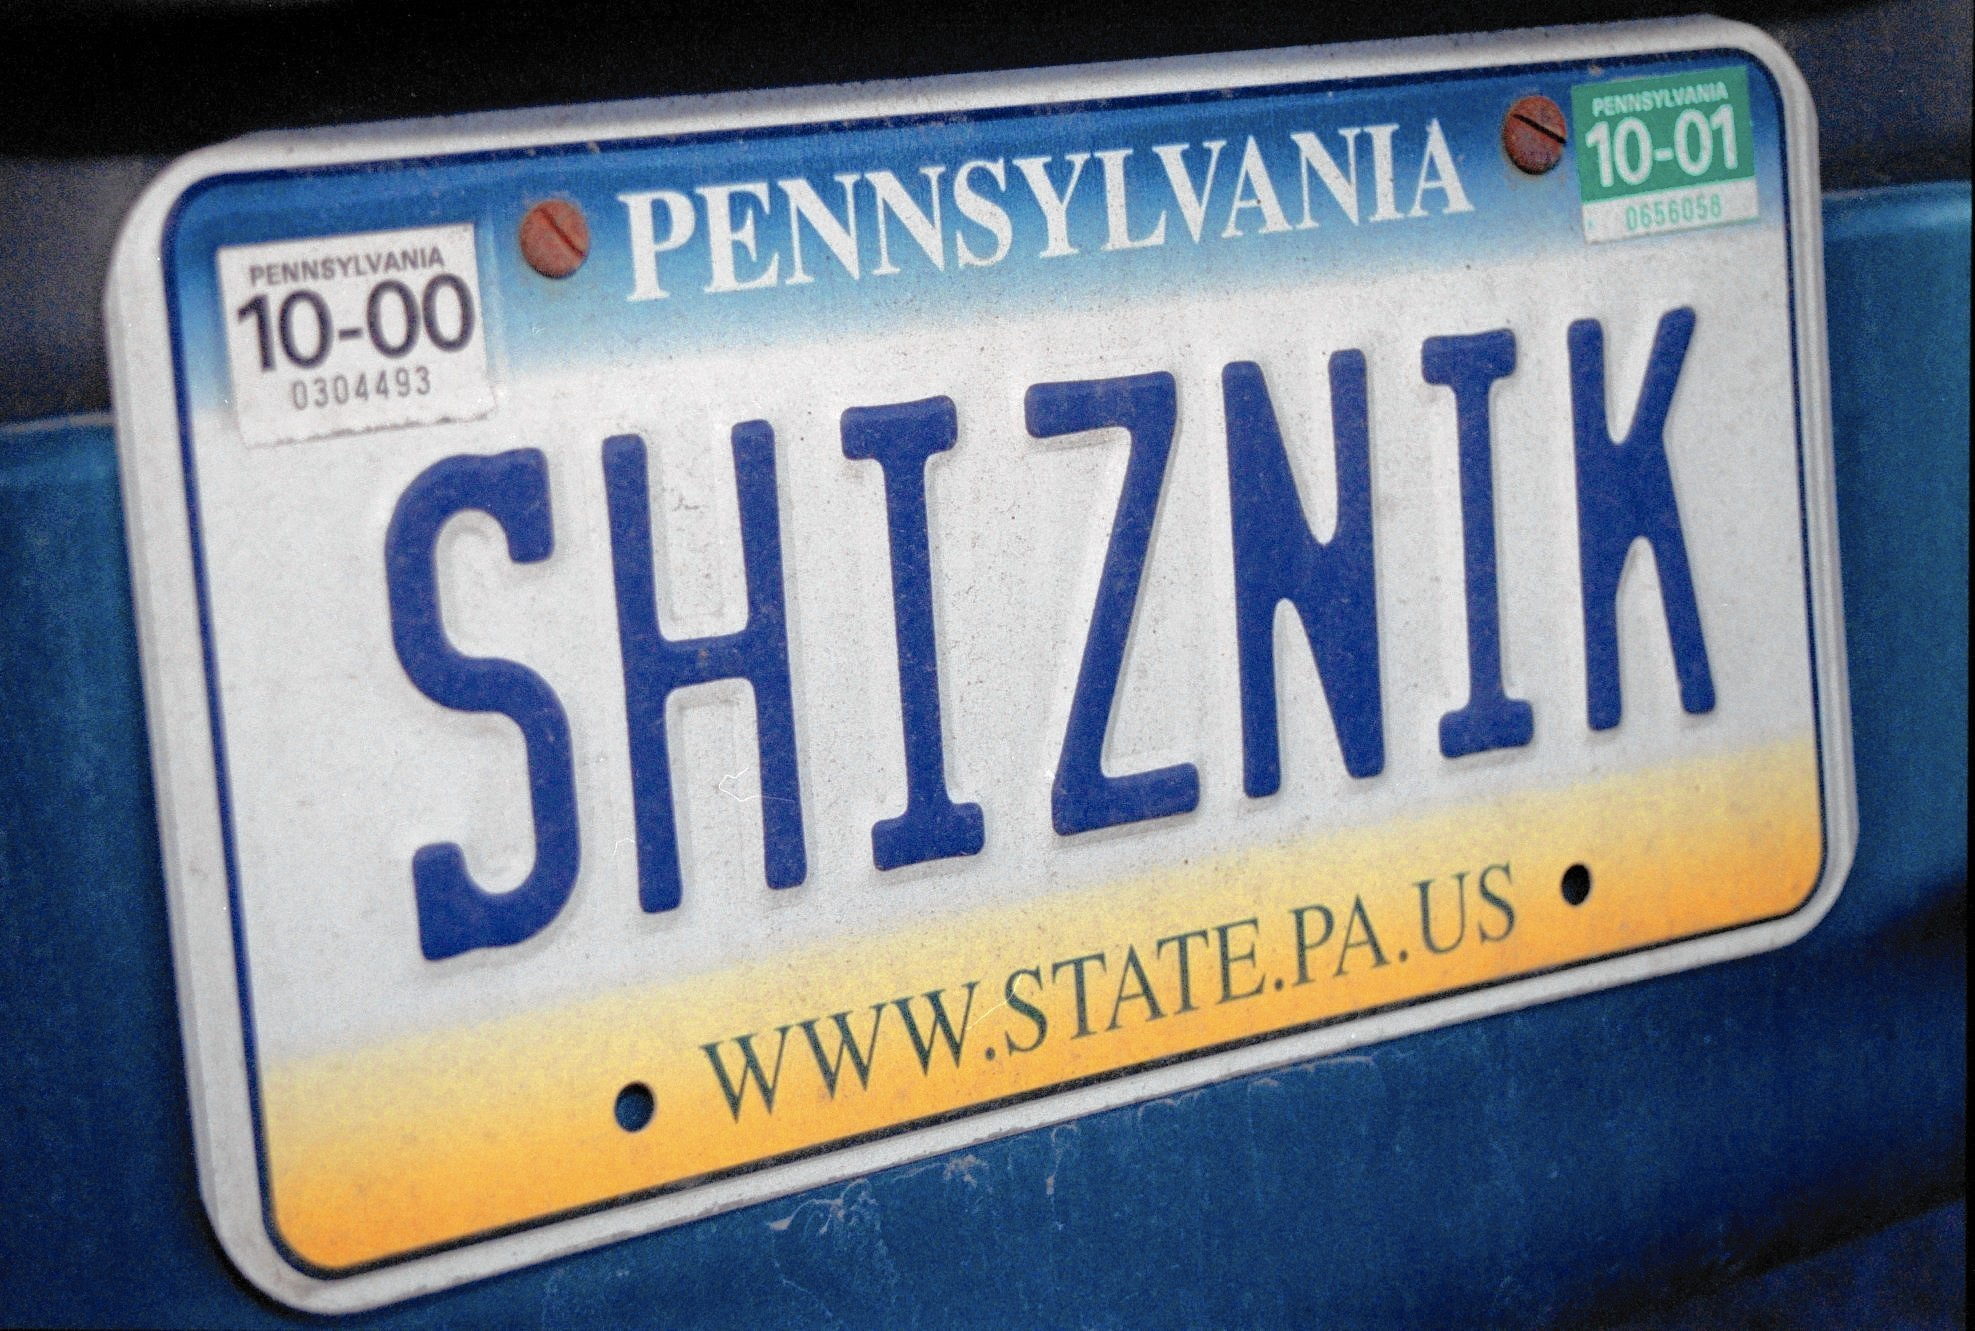 PennDOT team decides what license plates are offensive - The ...